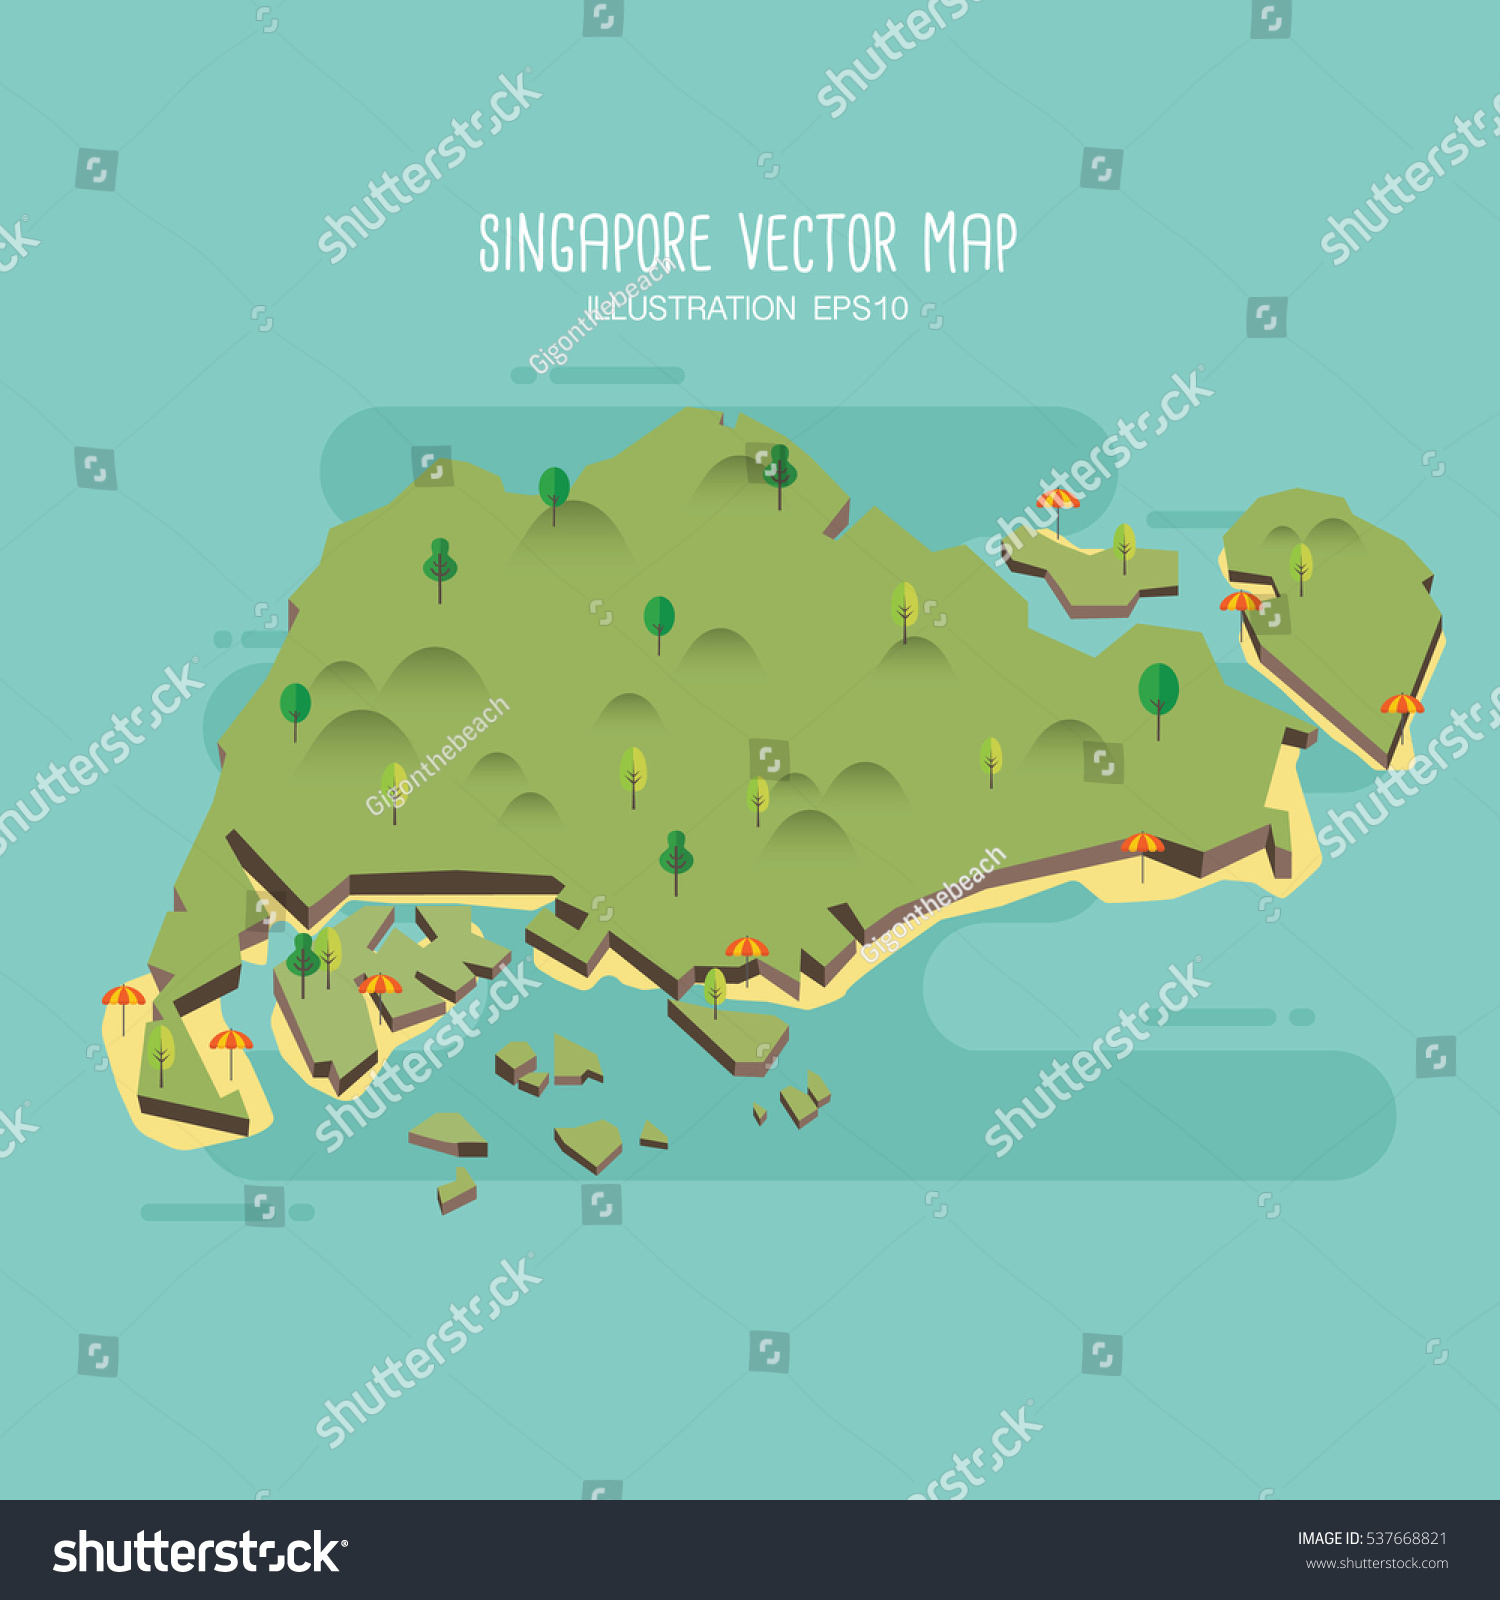 Singapore Vector Map Stock Vector Shutterstock - Singapore map vector